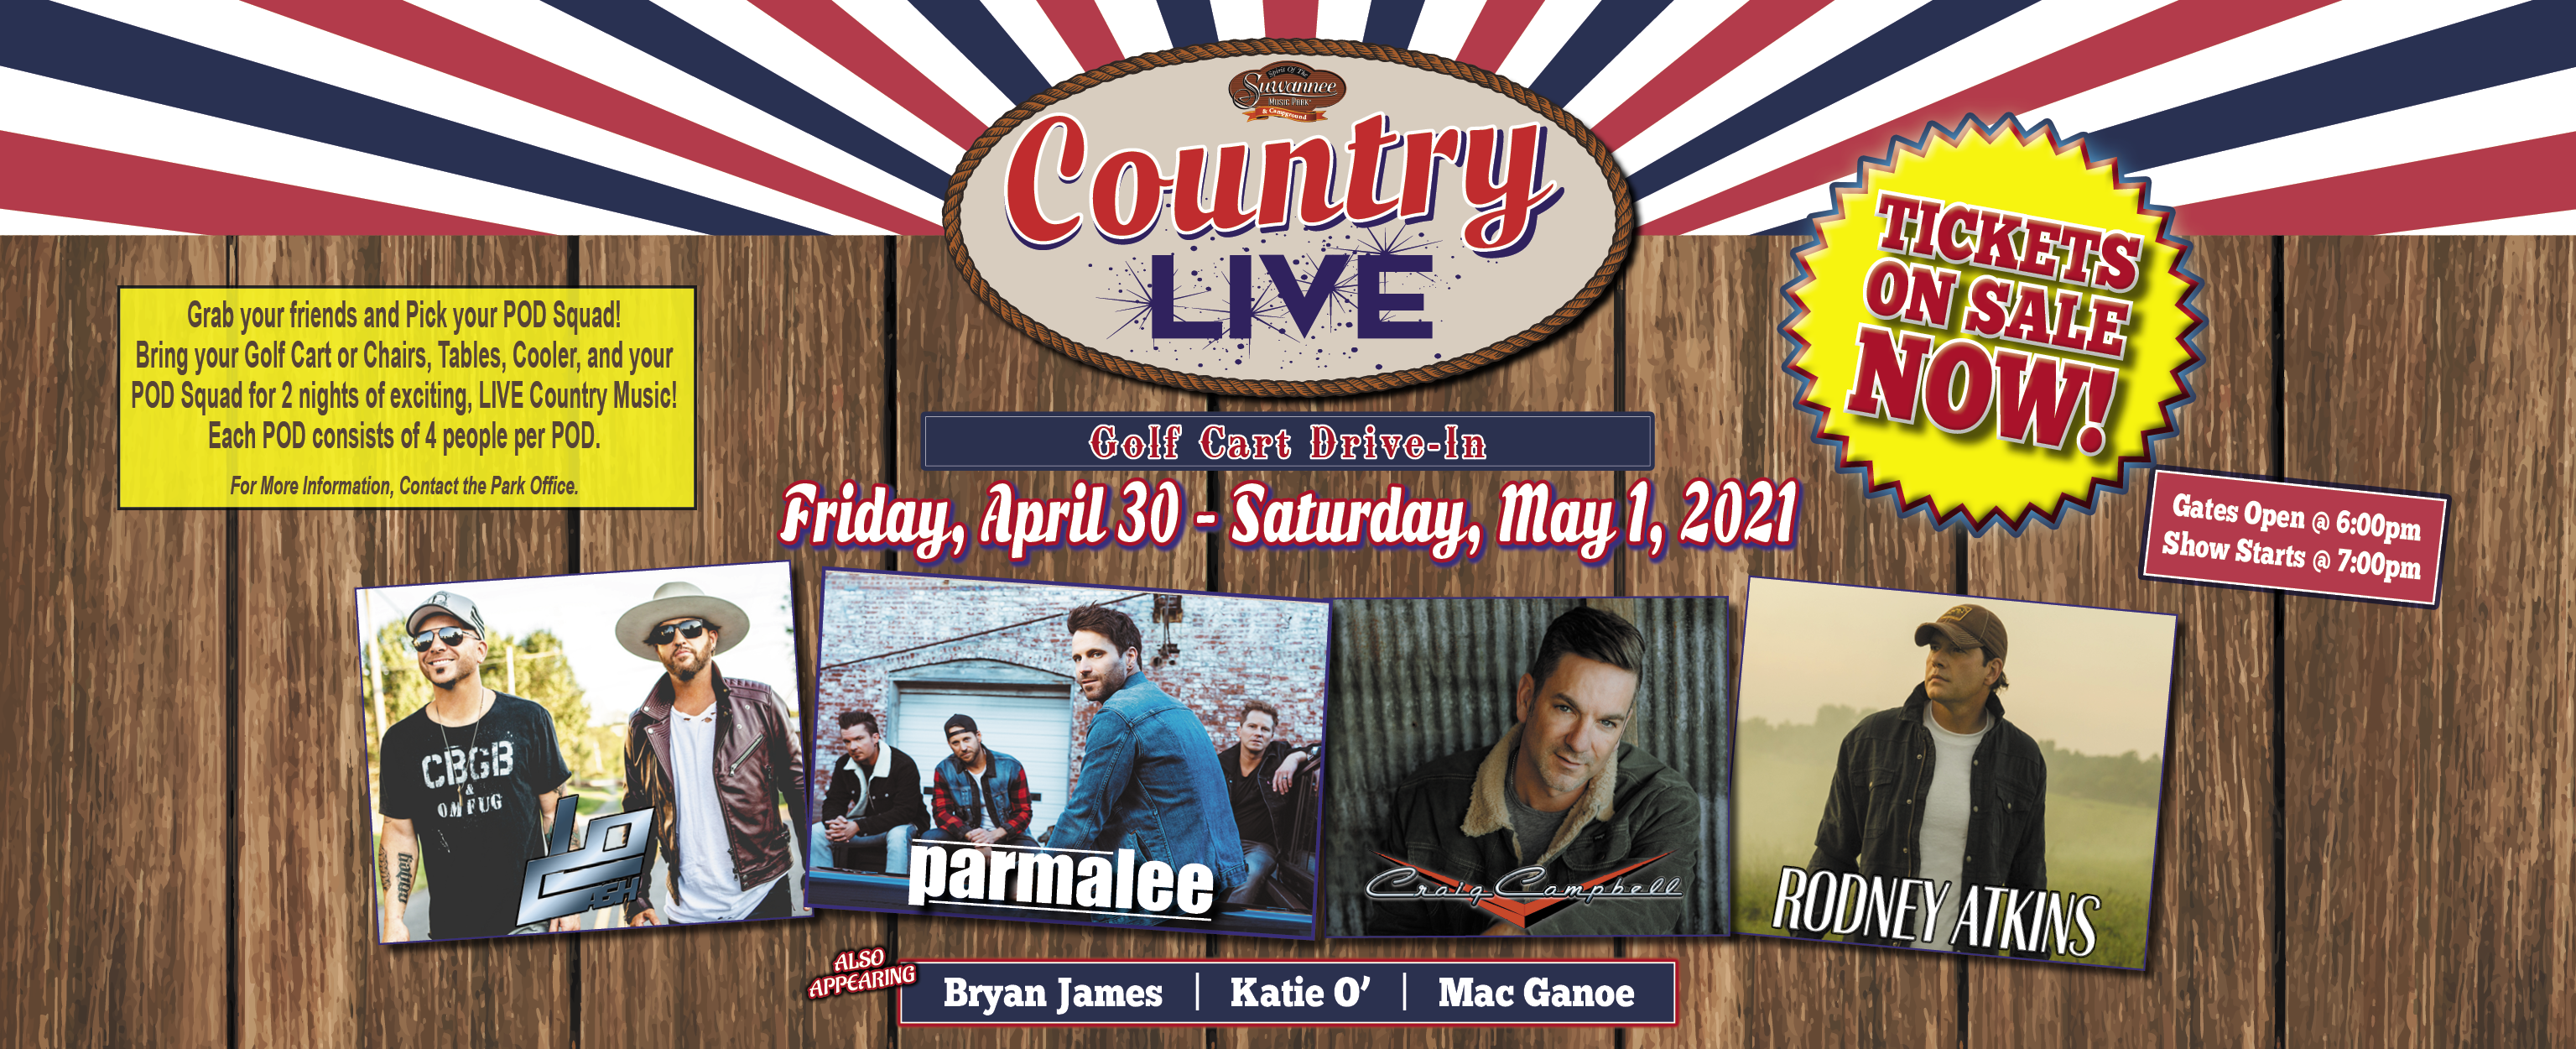 Country Live -2021